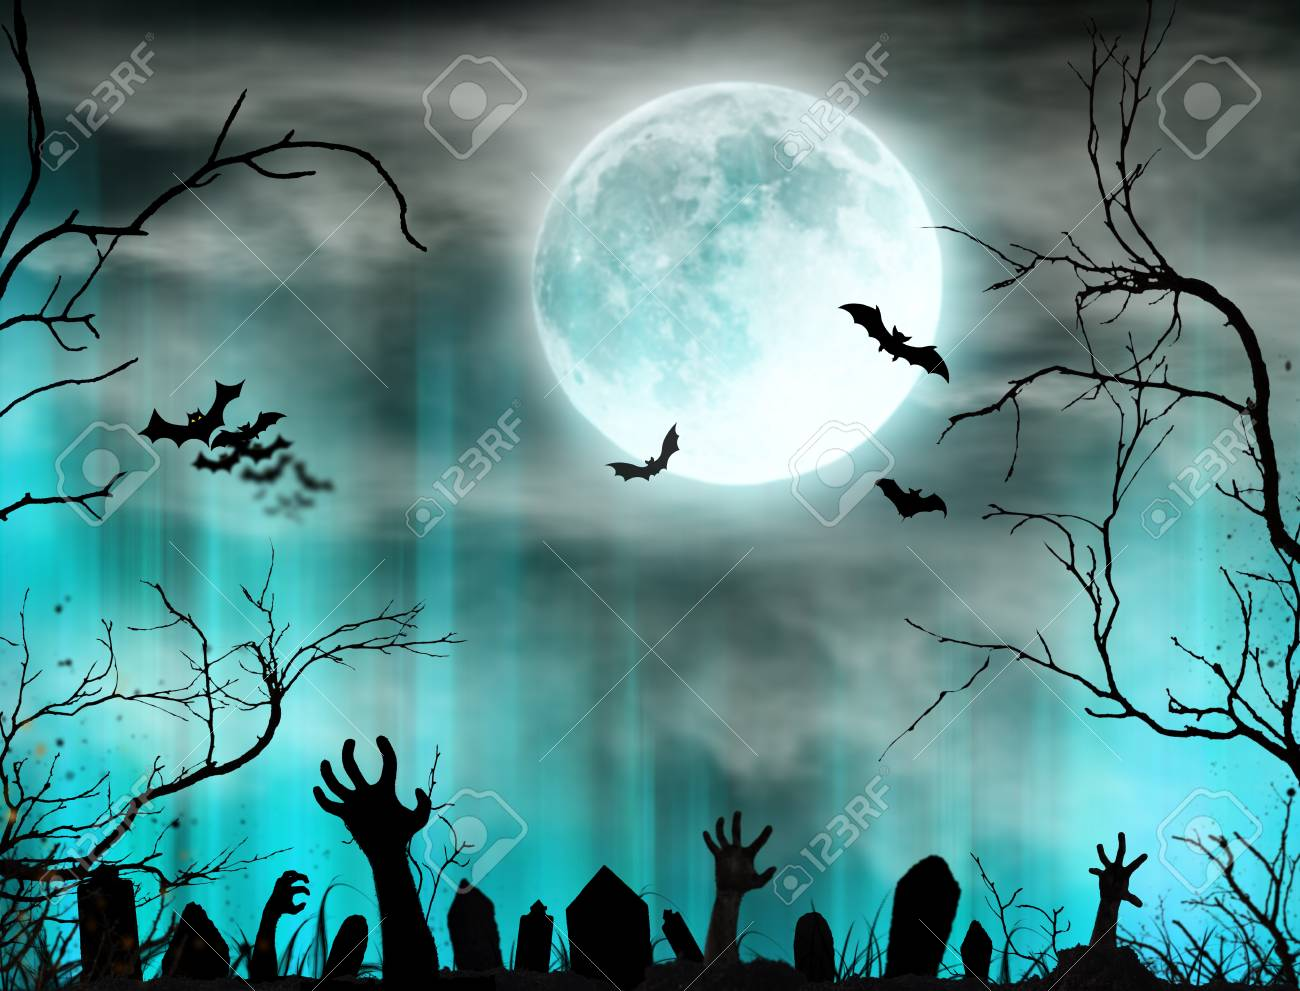 Halloween Spooky Pictures.Spooky Halloween Background With Zombie Hands